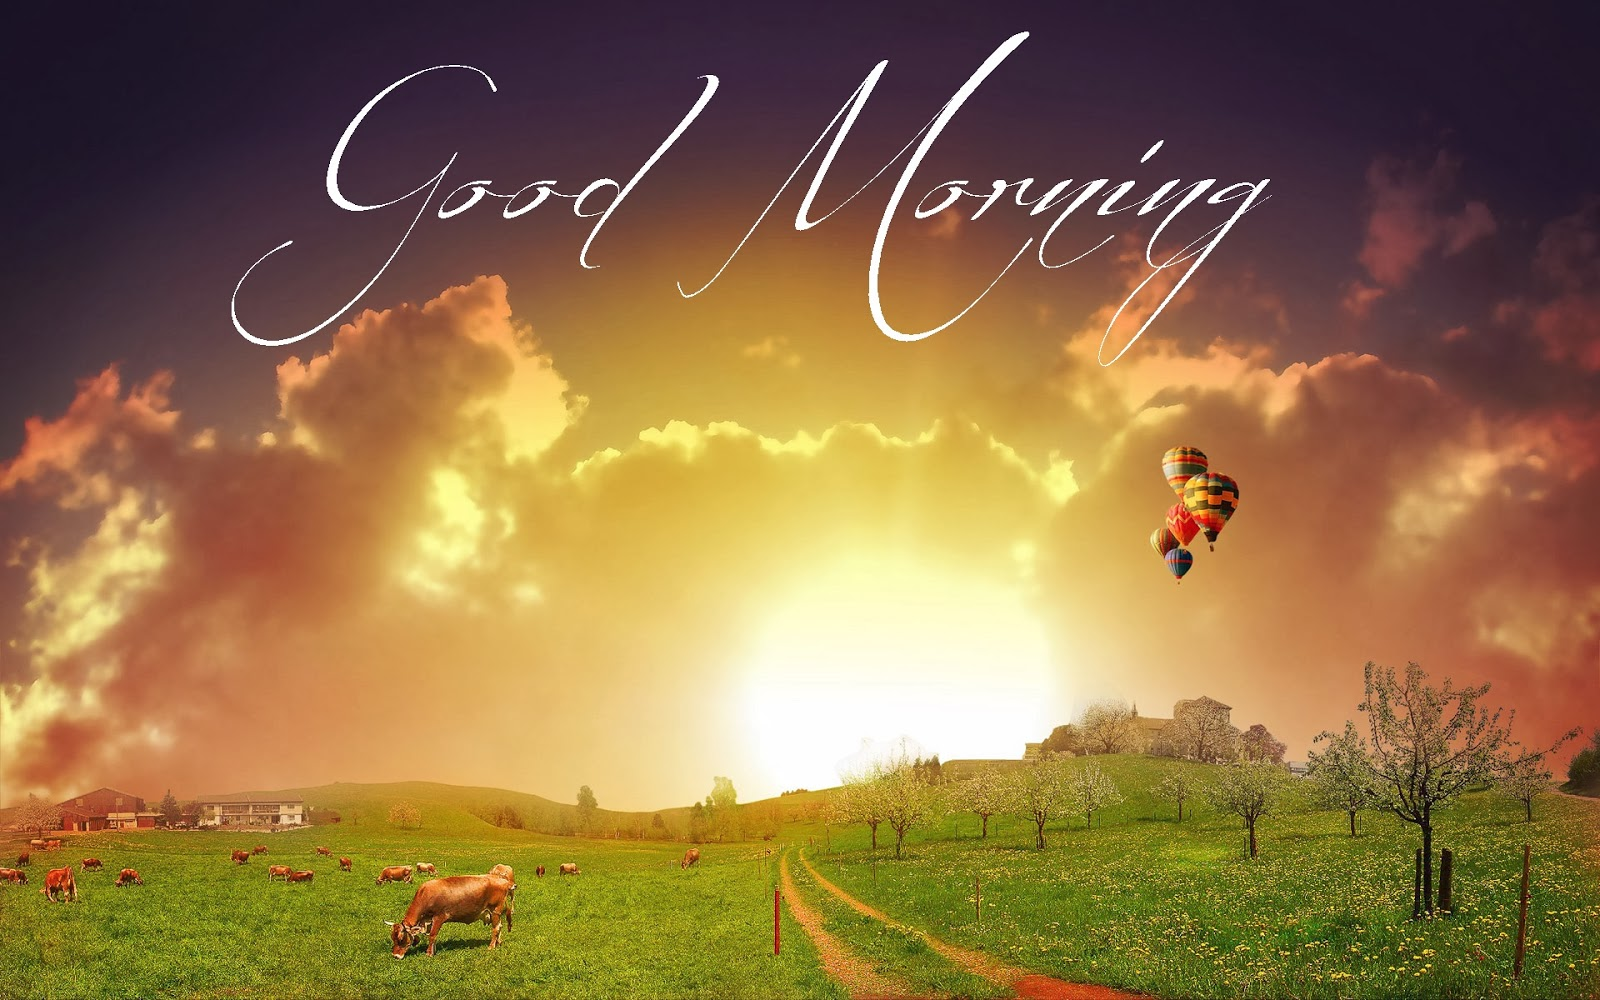 Cute Baby Gud Morning Wallpaper Have A Good Day Good Morning Wishes Messages Festival